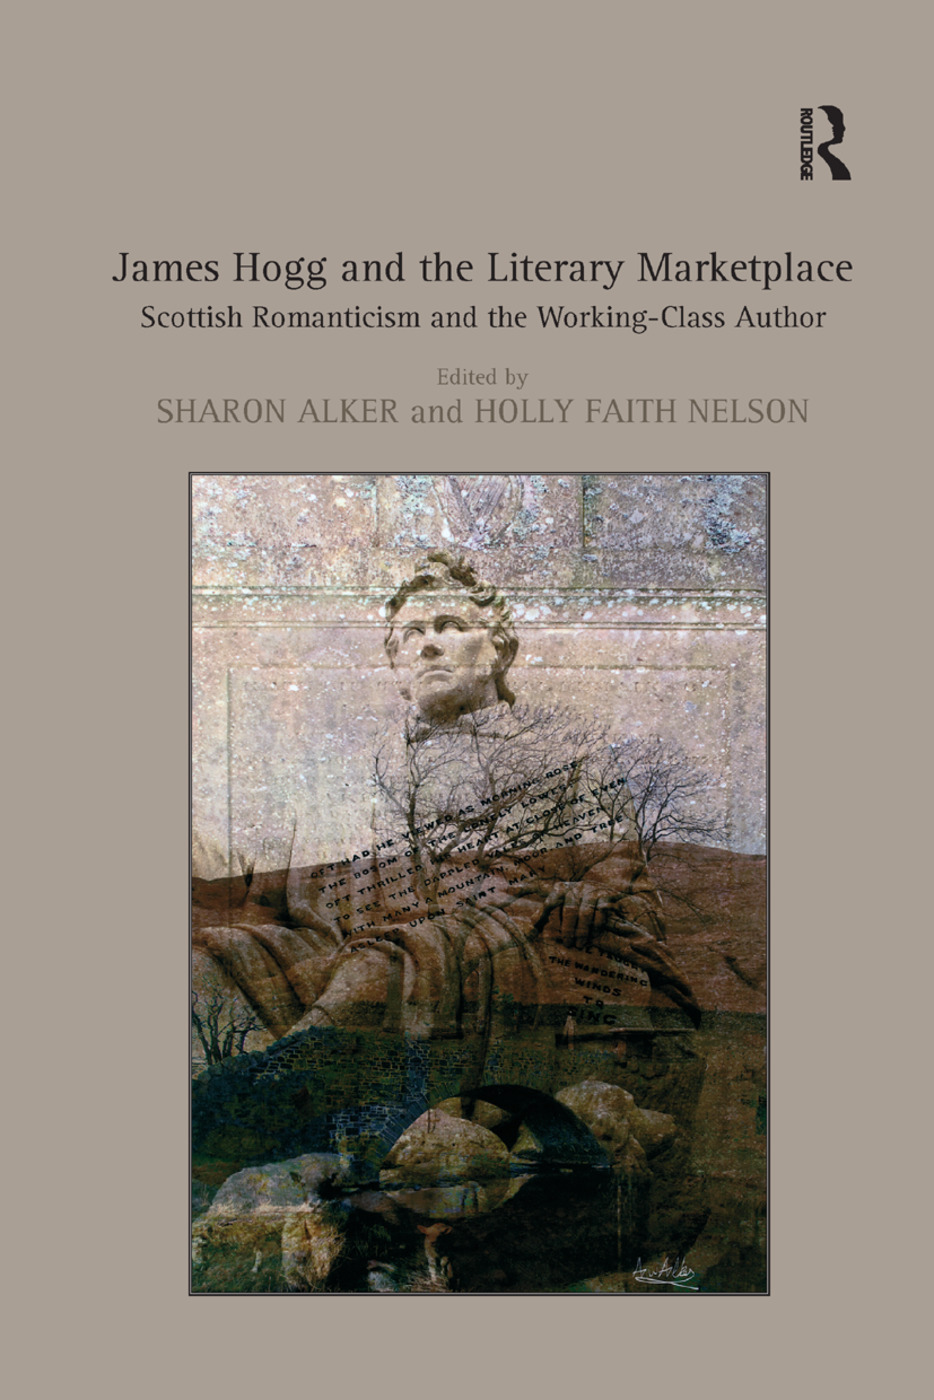 James Hogg and the Literary Marketplace: Scottish Romanticism and the Working-Class Author, 1st Edition (Paperback) book cover